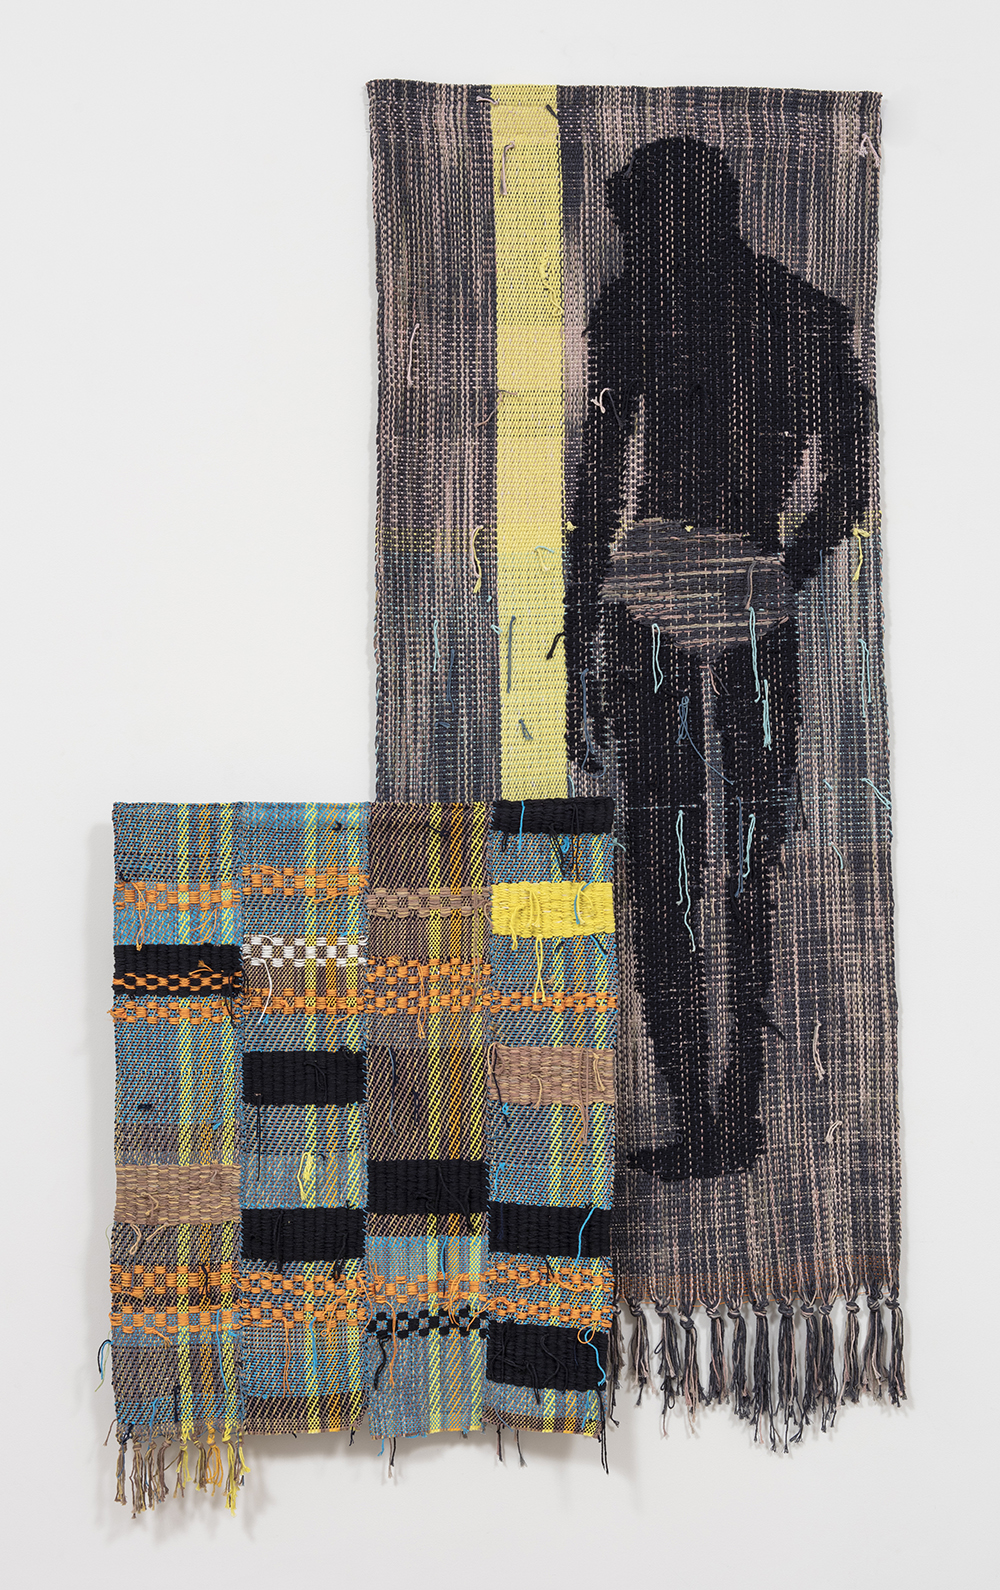 Diedrick Brackens. <em>Blue Under Night</em>, 2017. Woven cotton yarn, 78 x 31 inches & <em>Wading Still</em>, 2017. Woven cotton and nylon yarn, 40 x 29 1/2 inches